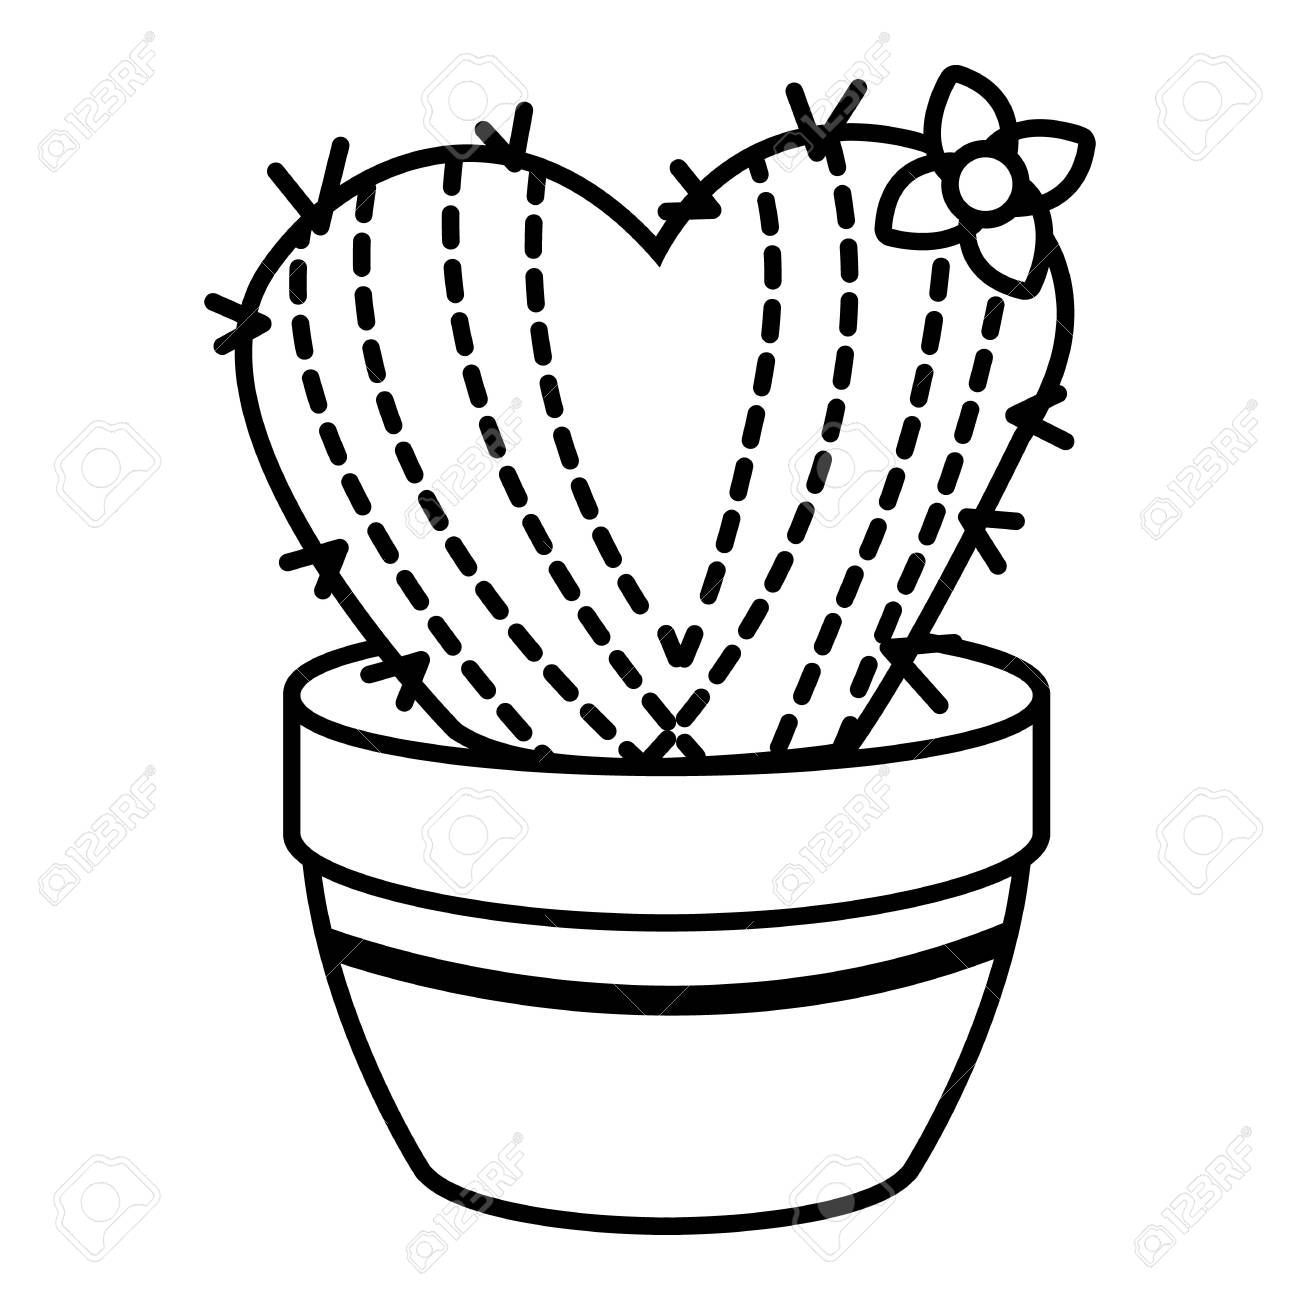 1300x1300 Needle Heart Cactus Icon, Outline Line Style Royalty Free Cliparts